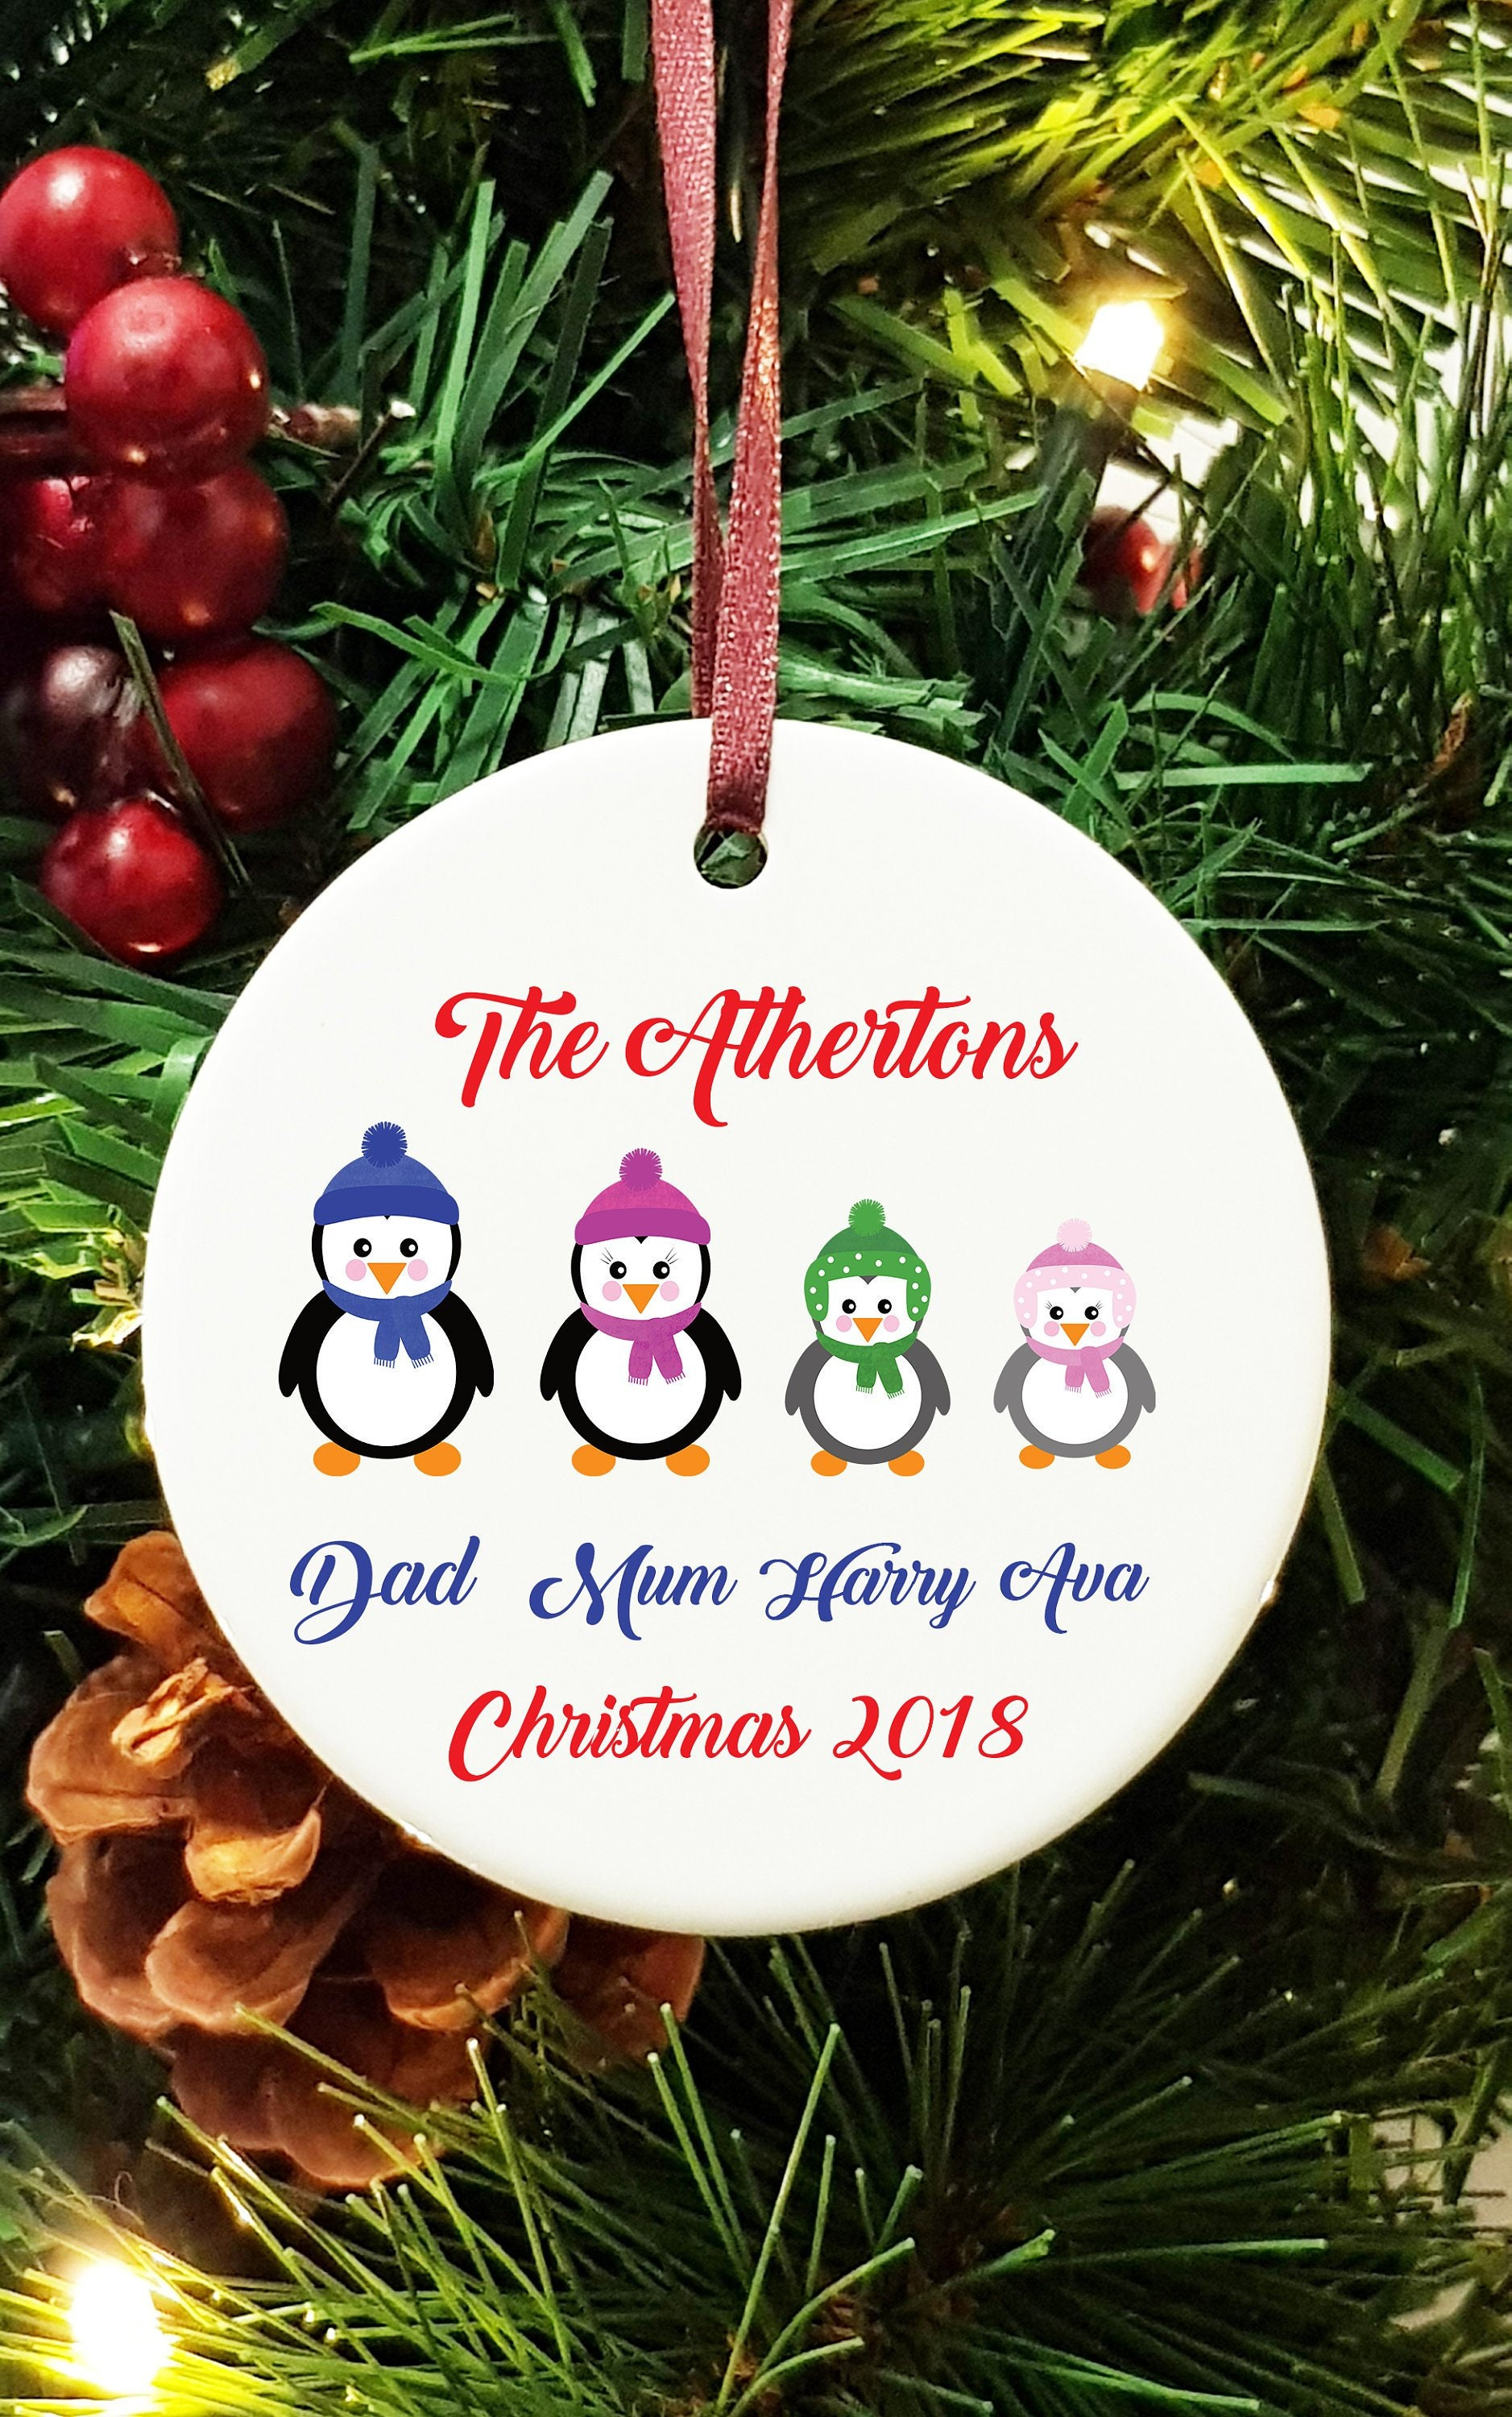 Personalised Ceramic Christmas Tree Decoration Hanging Ornament Cute Penguin Family Name